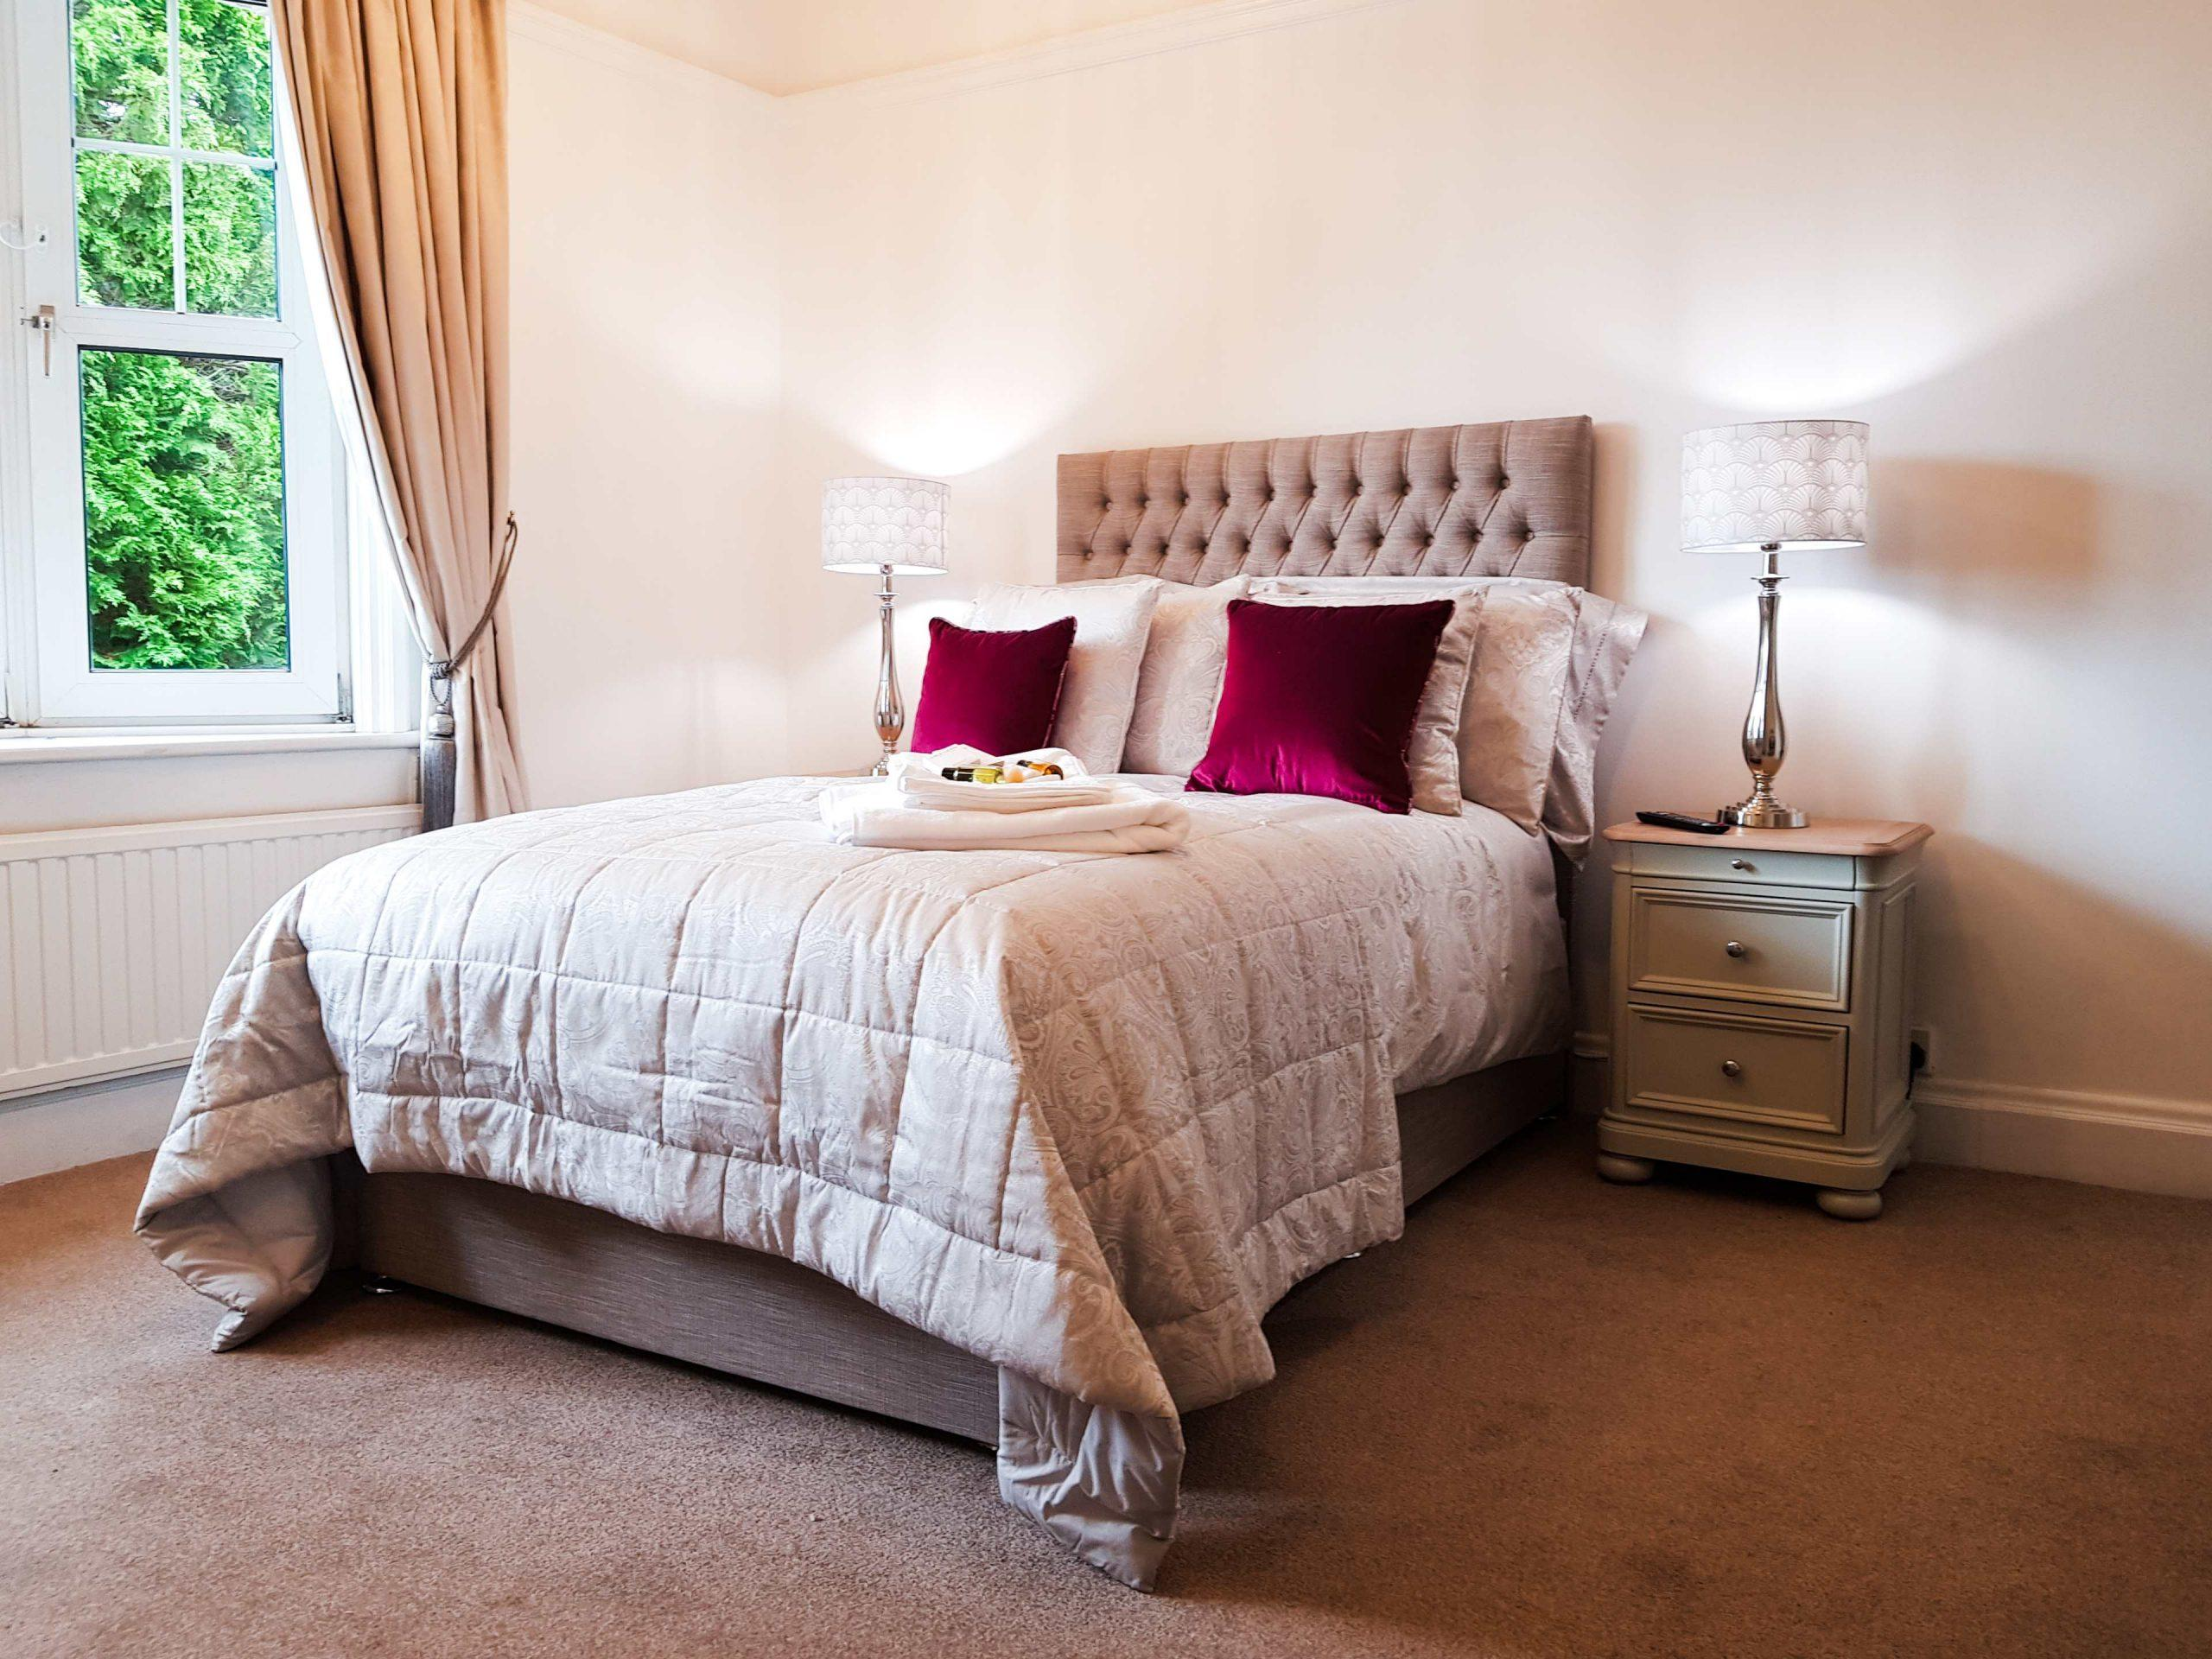 Care home beds; tips to help you choose the right bed for your residents.